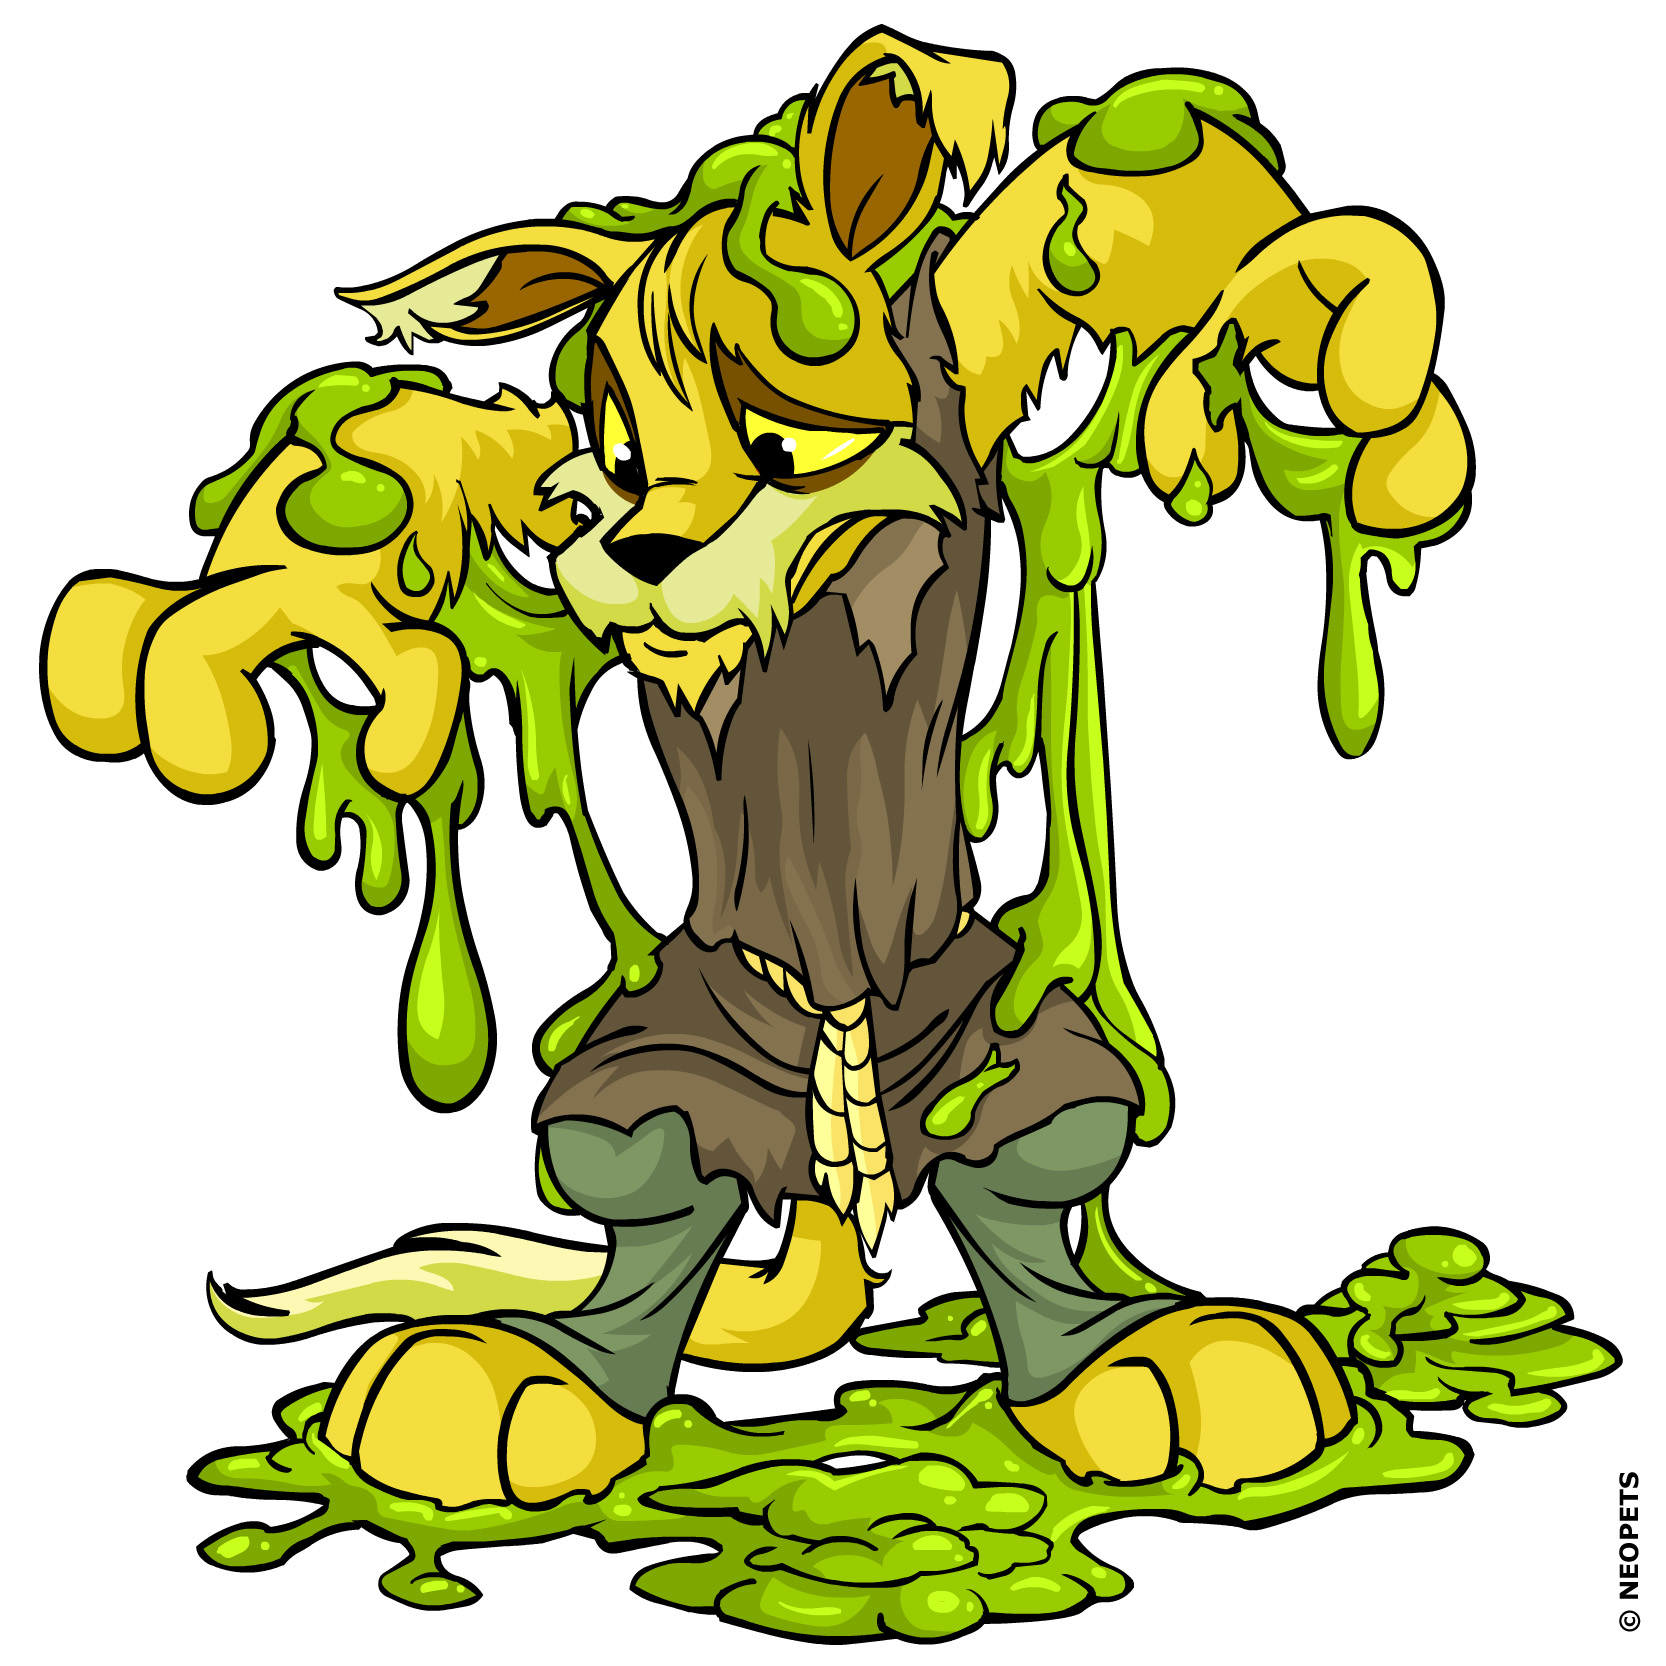 http://images.neopets.com/press/lupe_4.jpg